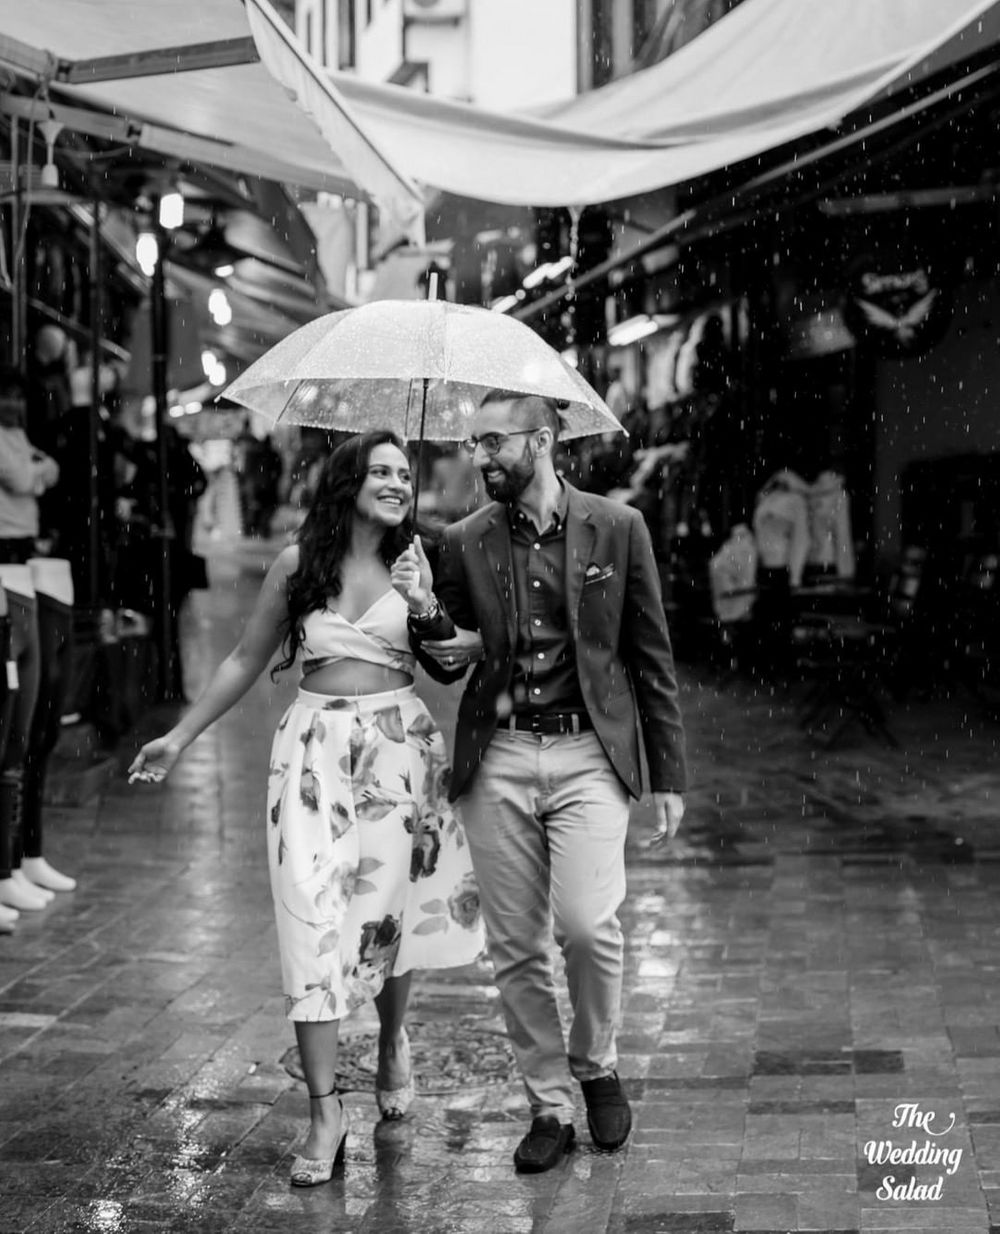 Photo of cool black and white couple pre wedding shot in the rain